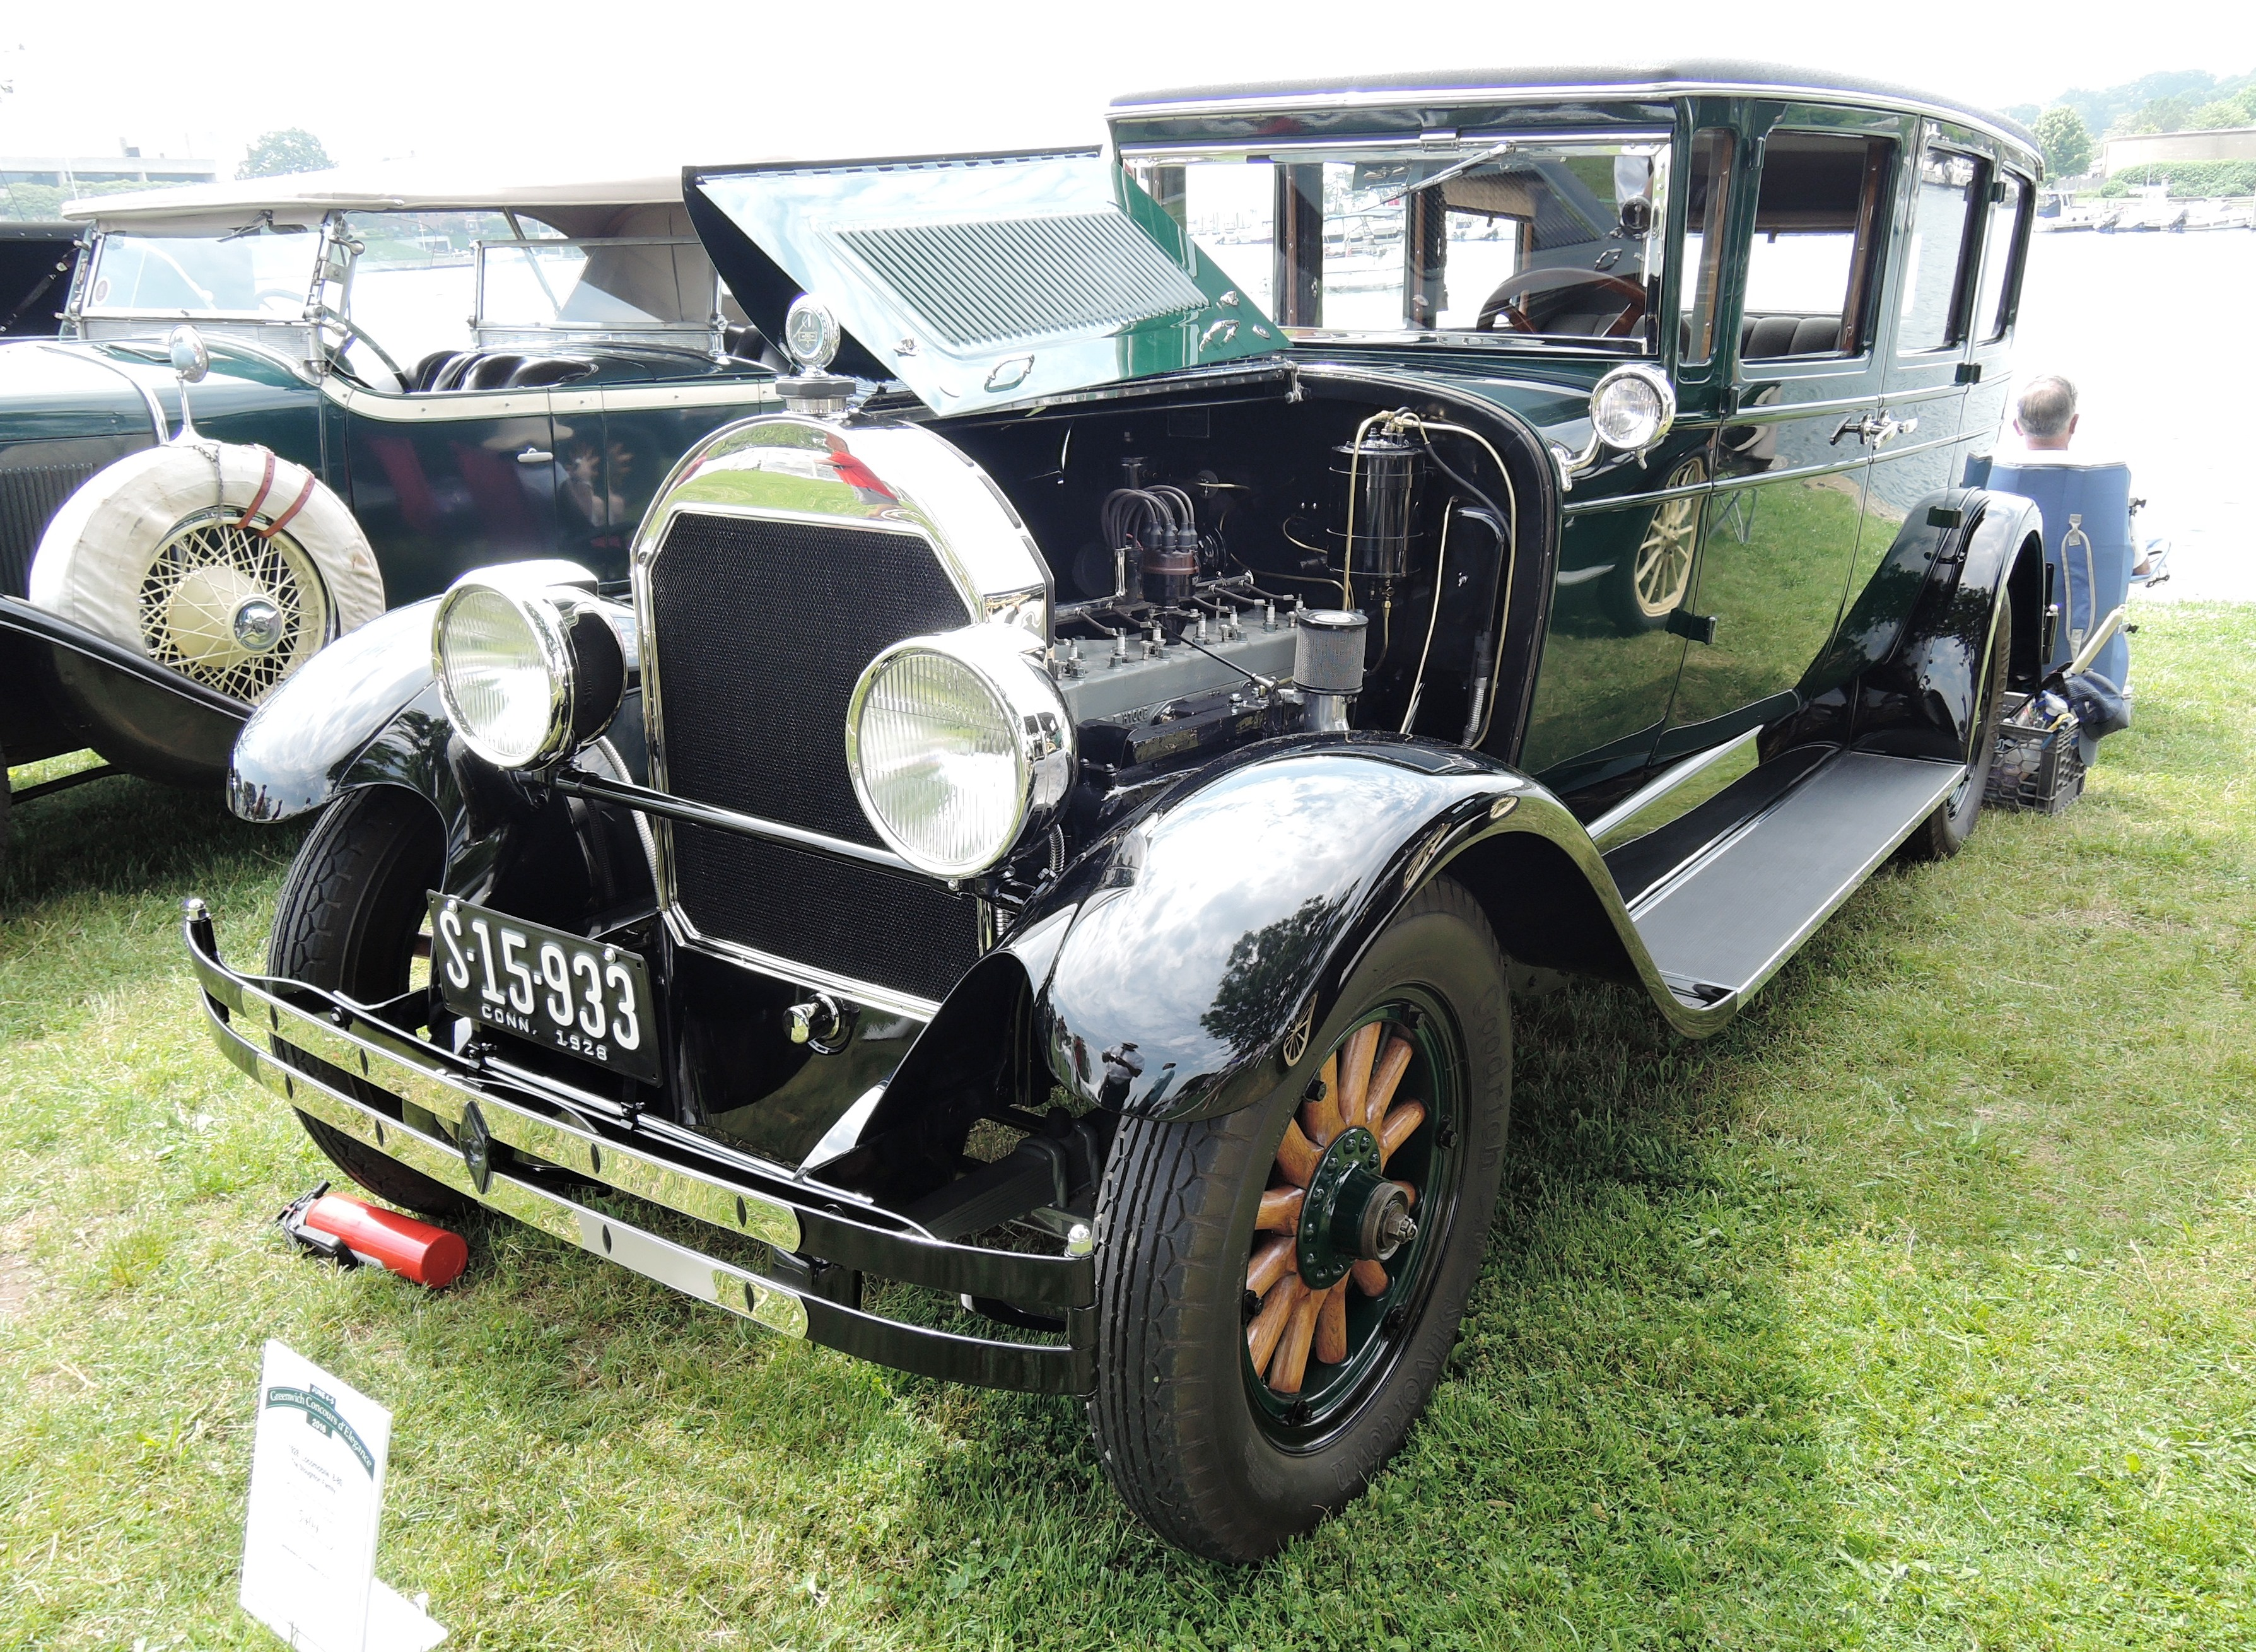 1928 Locomobile 8-80 - greenwich concours